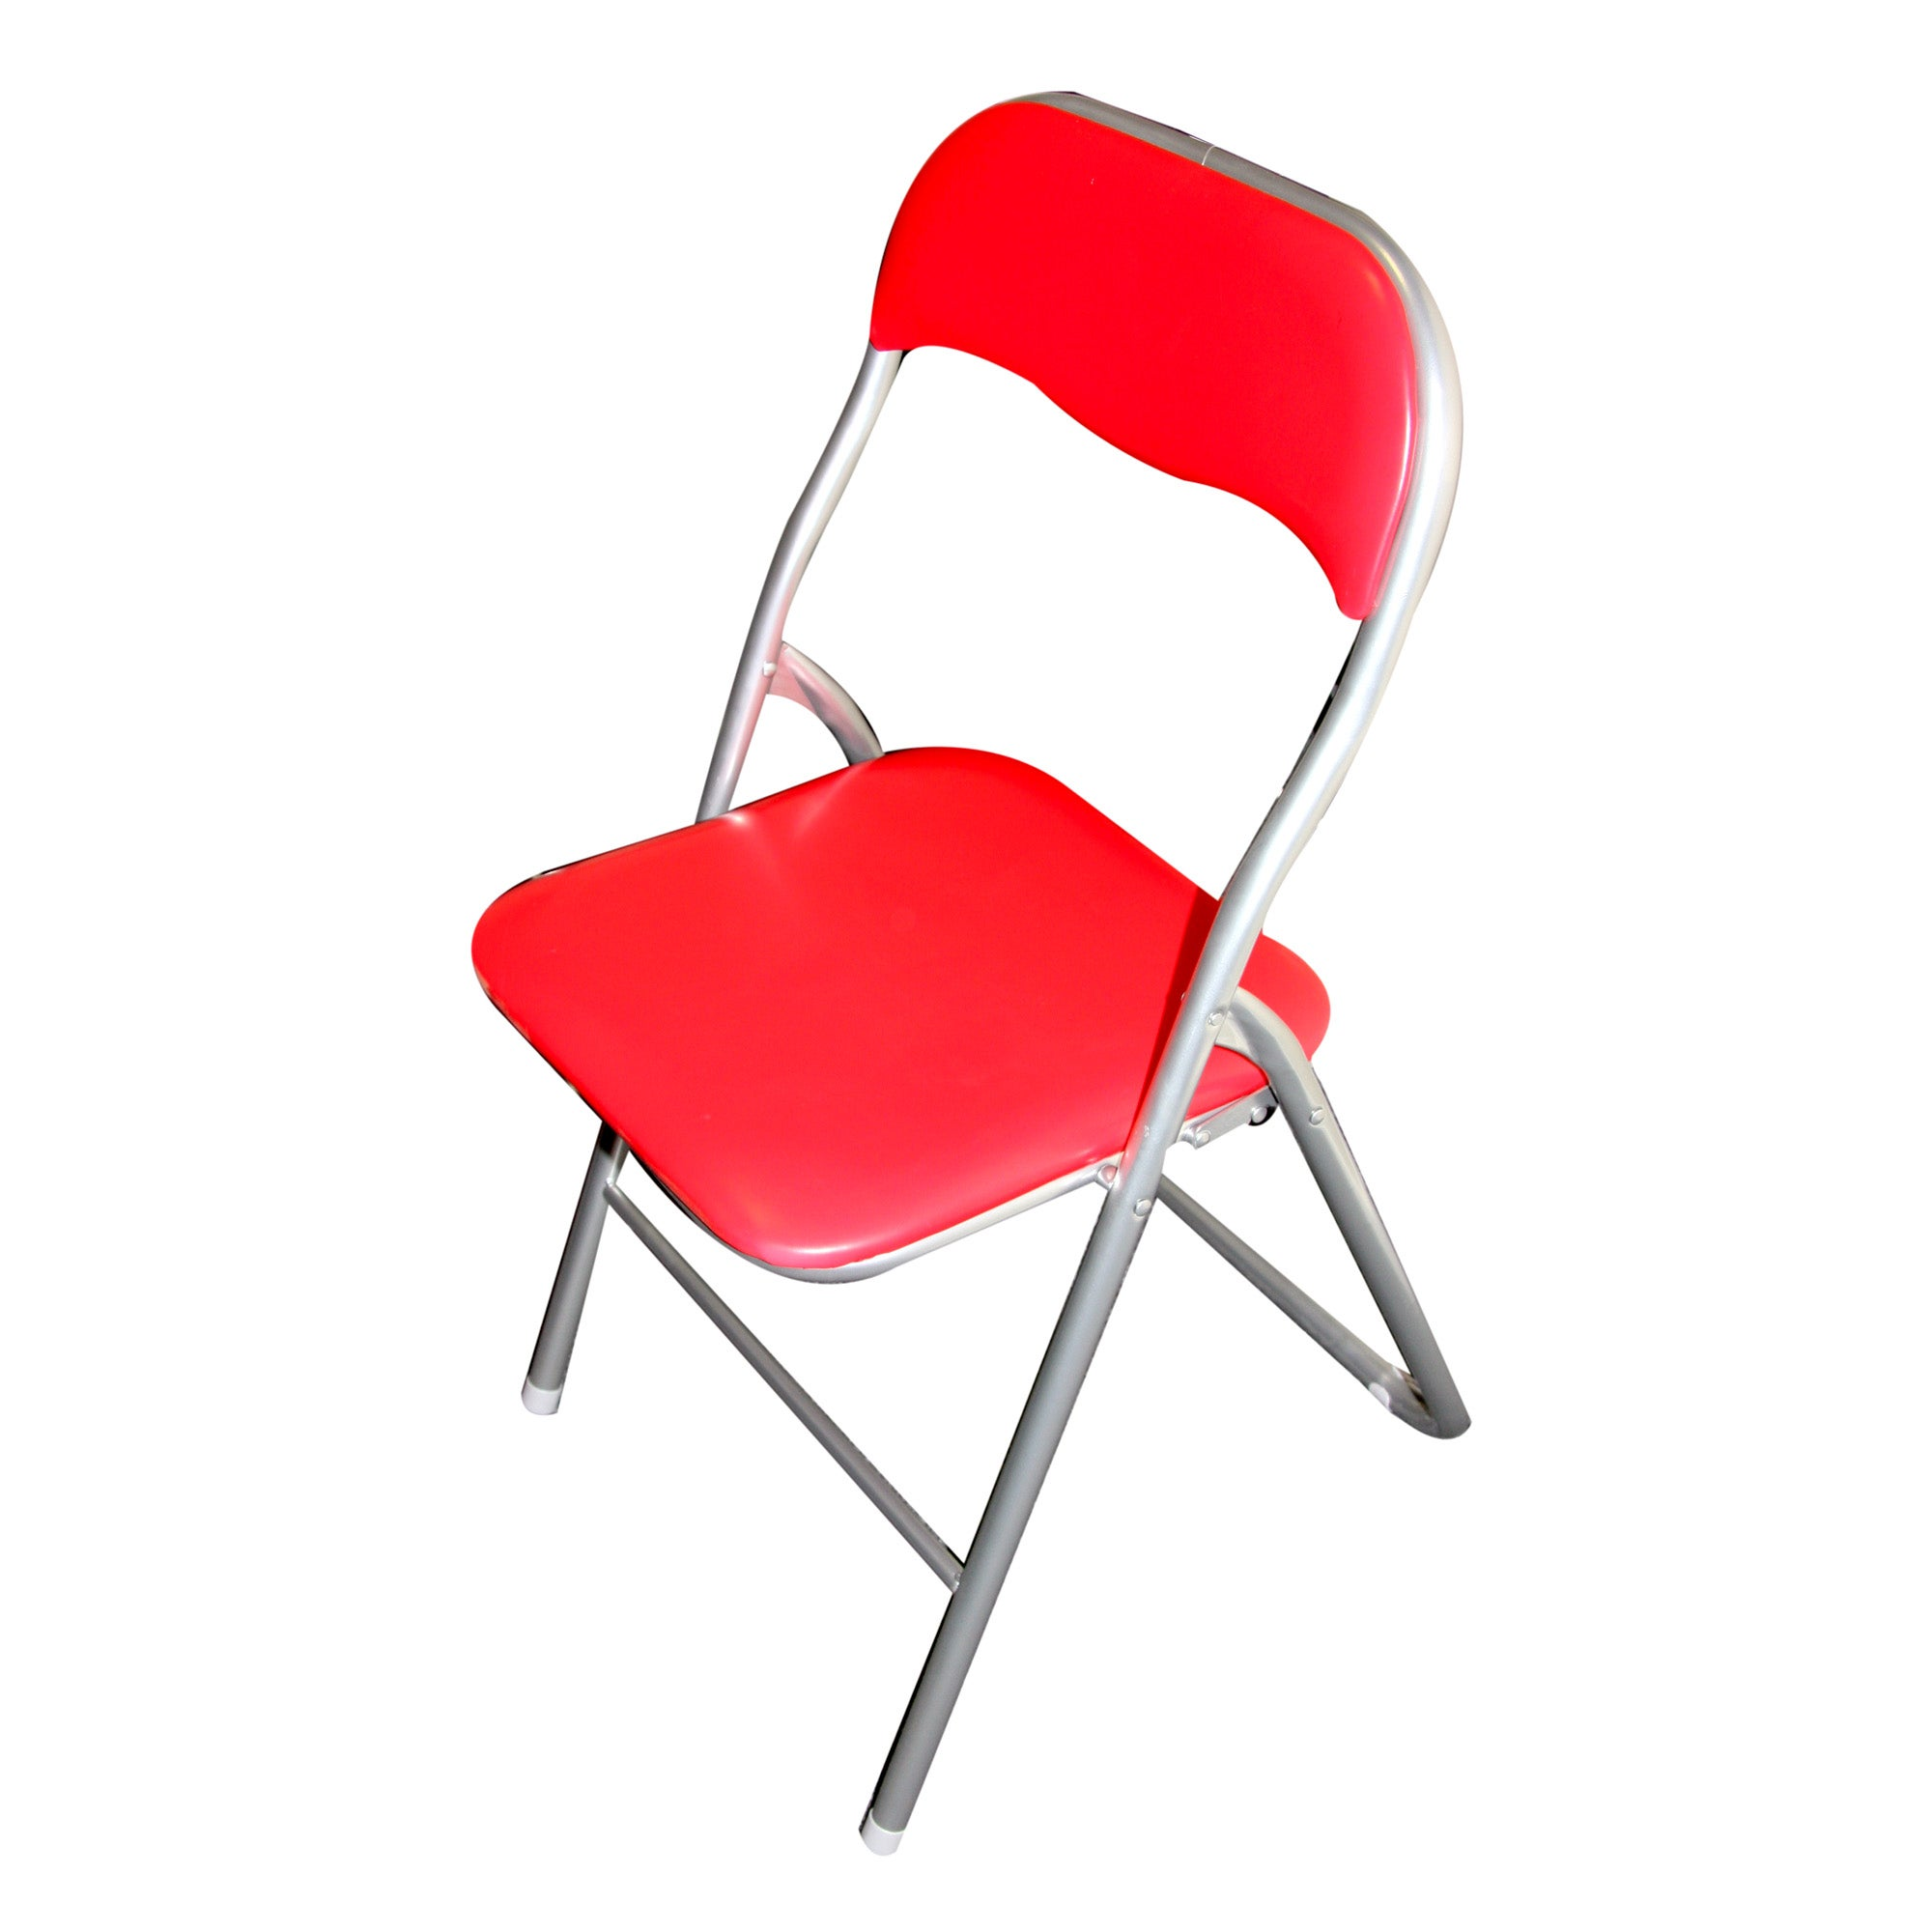 Miami Folding Chair